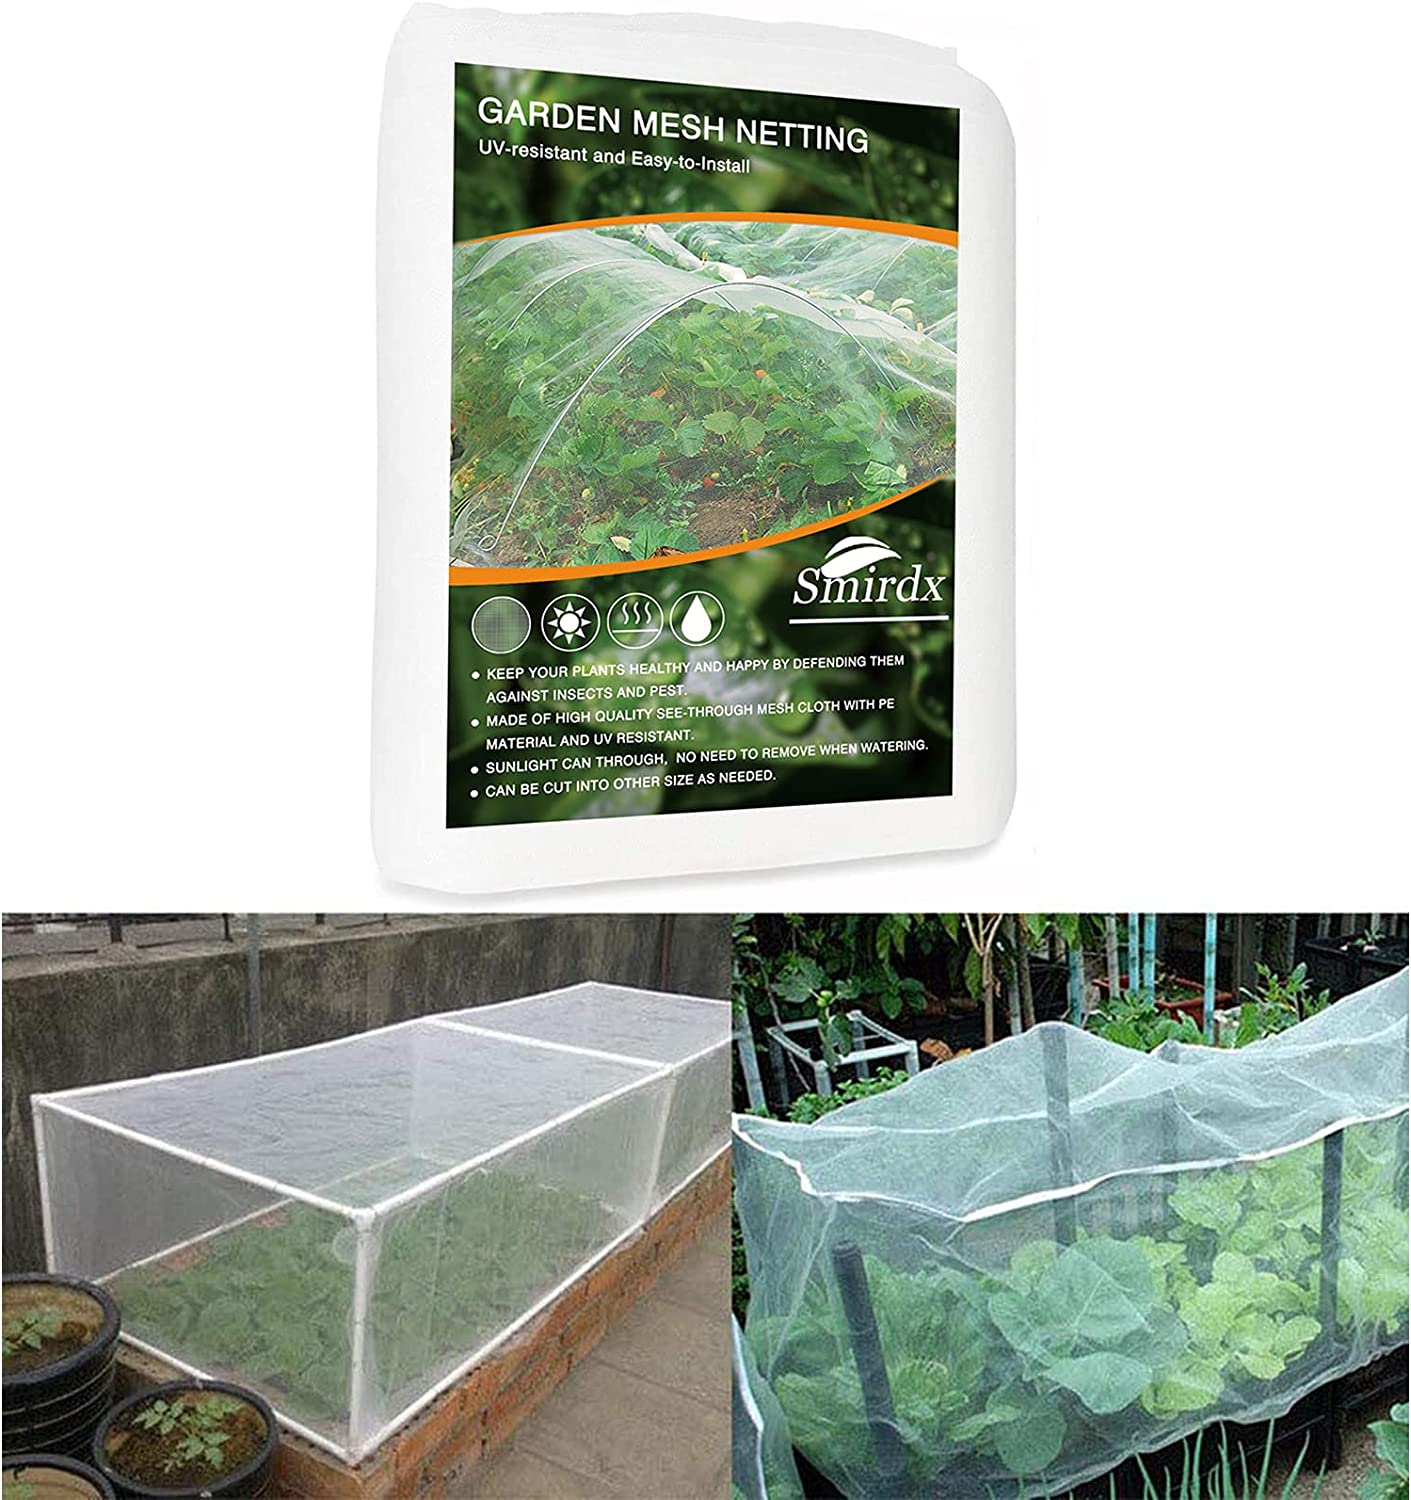 Ultra Fine Garden Mesh Netting, 6.6 x 9.9FT Bird Screen Barrier Netting, Thicken Plant Covers Protect Plant Fruits Flower Vegetable Health Growing